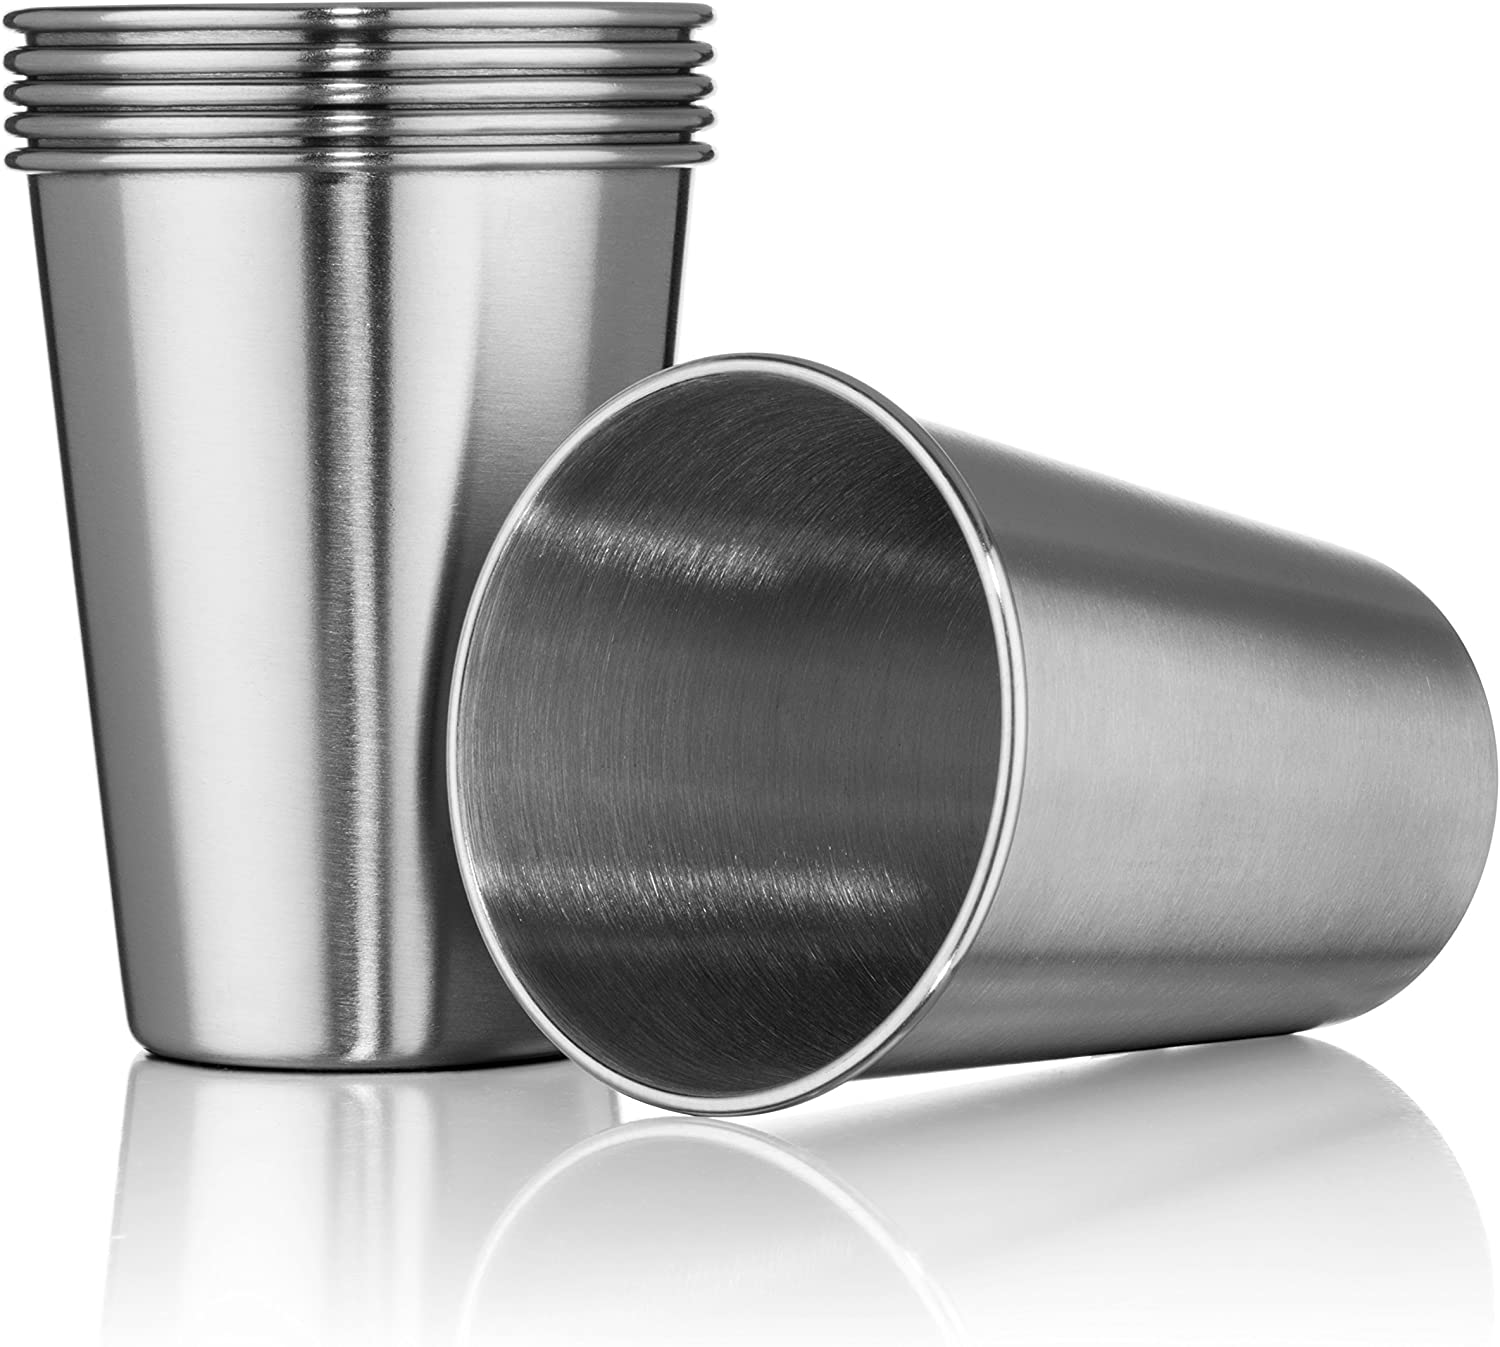 Hudson Essential 12 oz. Stainless Steel Tumblers - Stackable Tumbler Cups - Set of 6 (12 oz.)